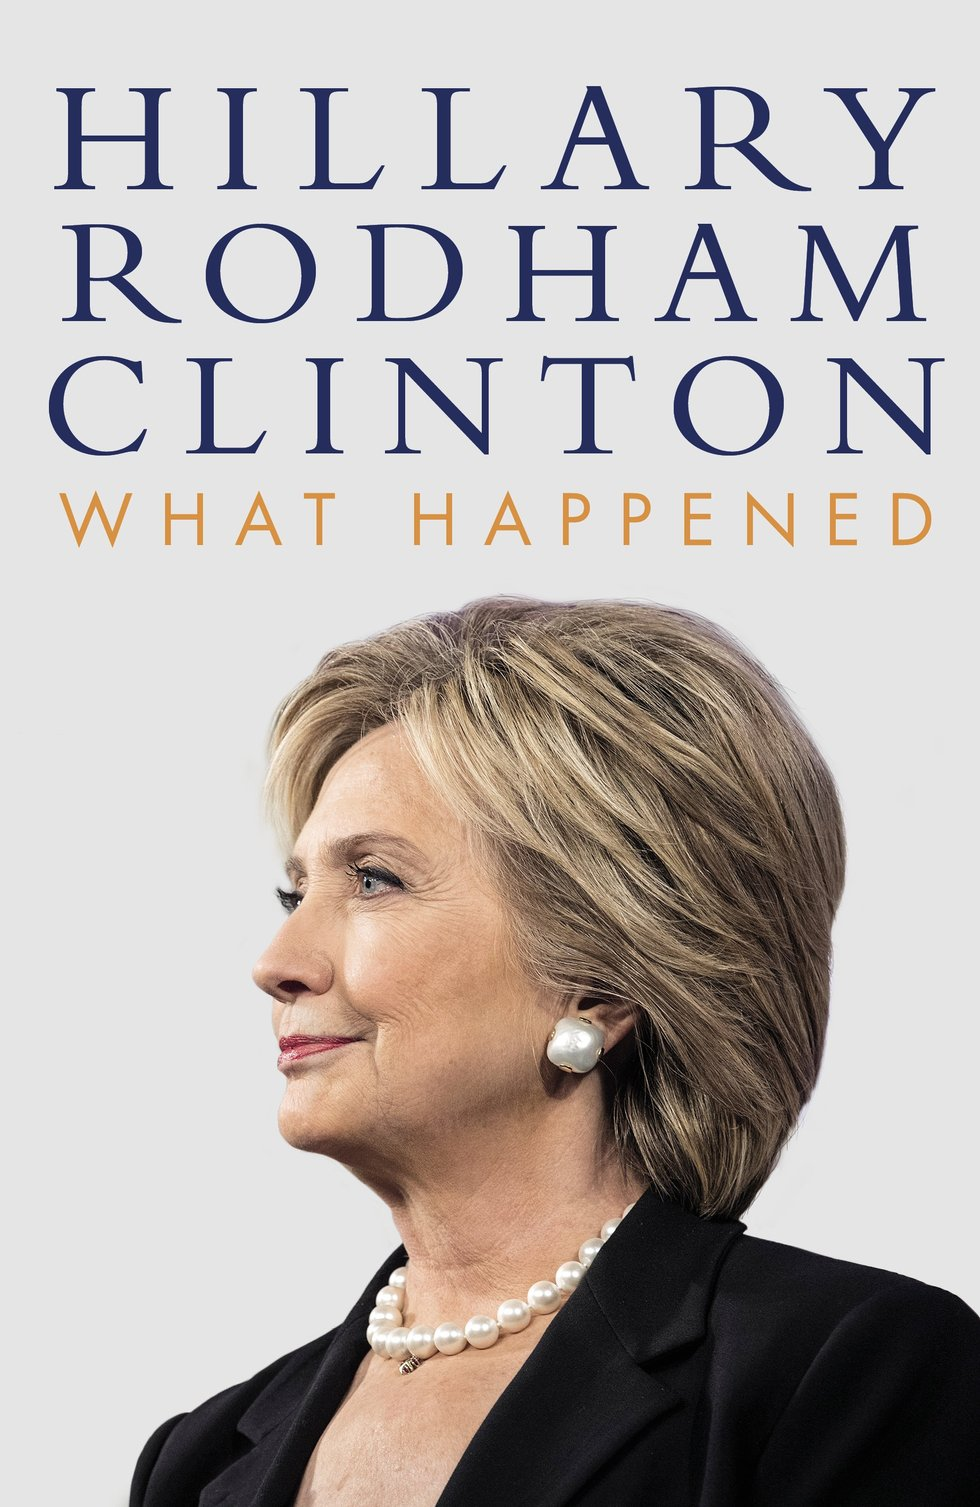 Hillary Rodham Clinton – What Happened